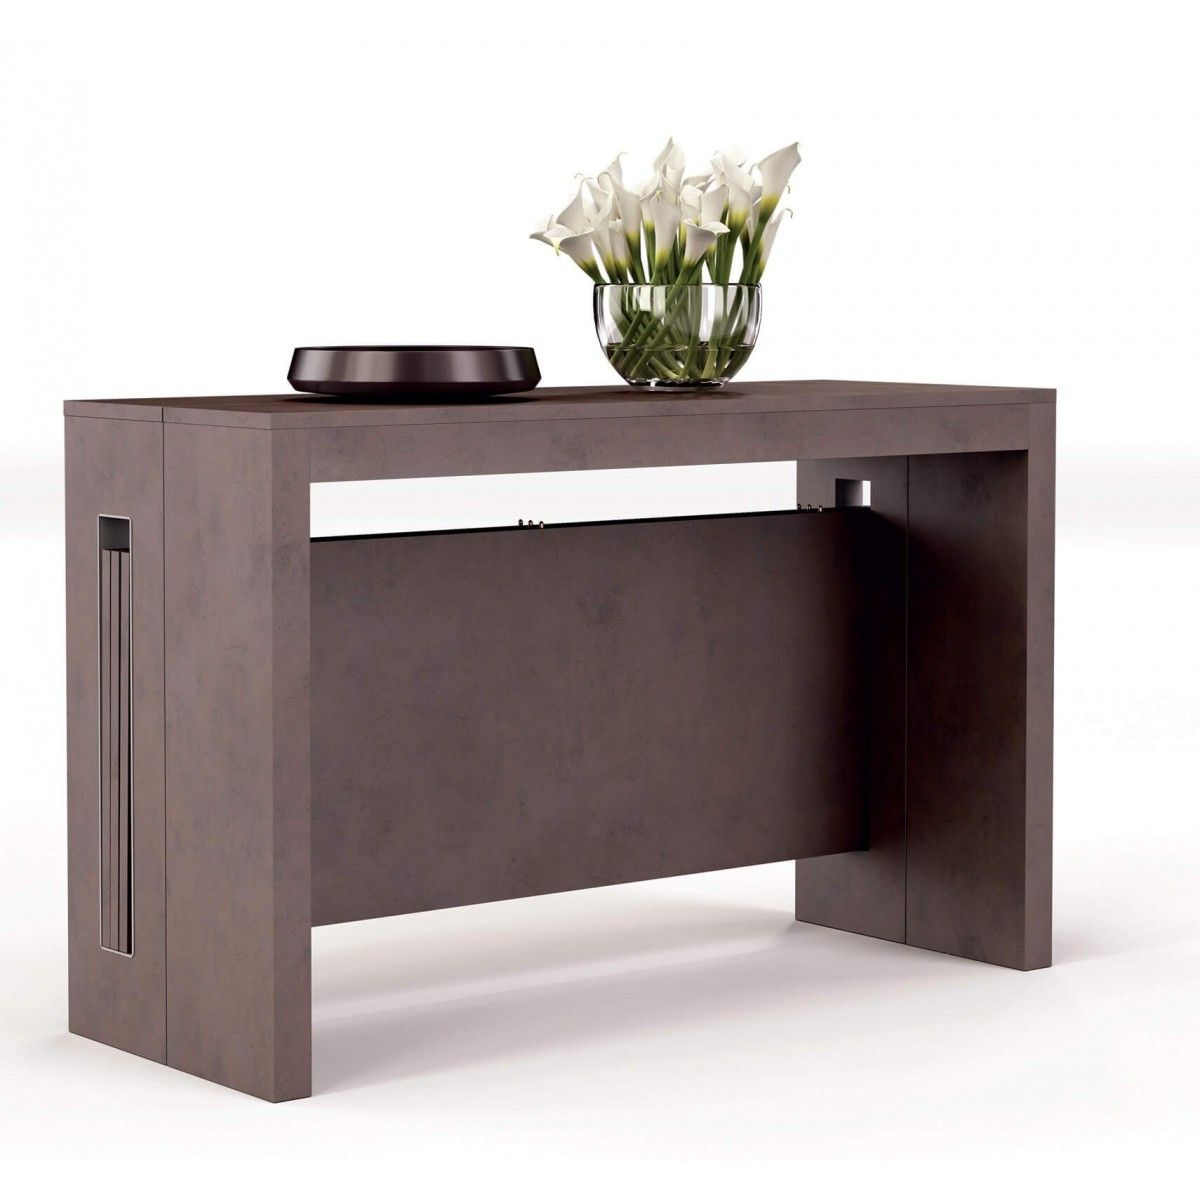 Table console exode n 730 pr sident meilleur prix - Console de table ...